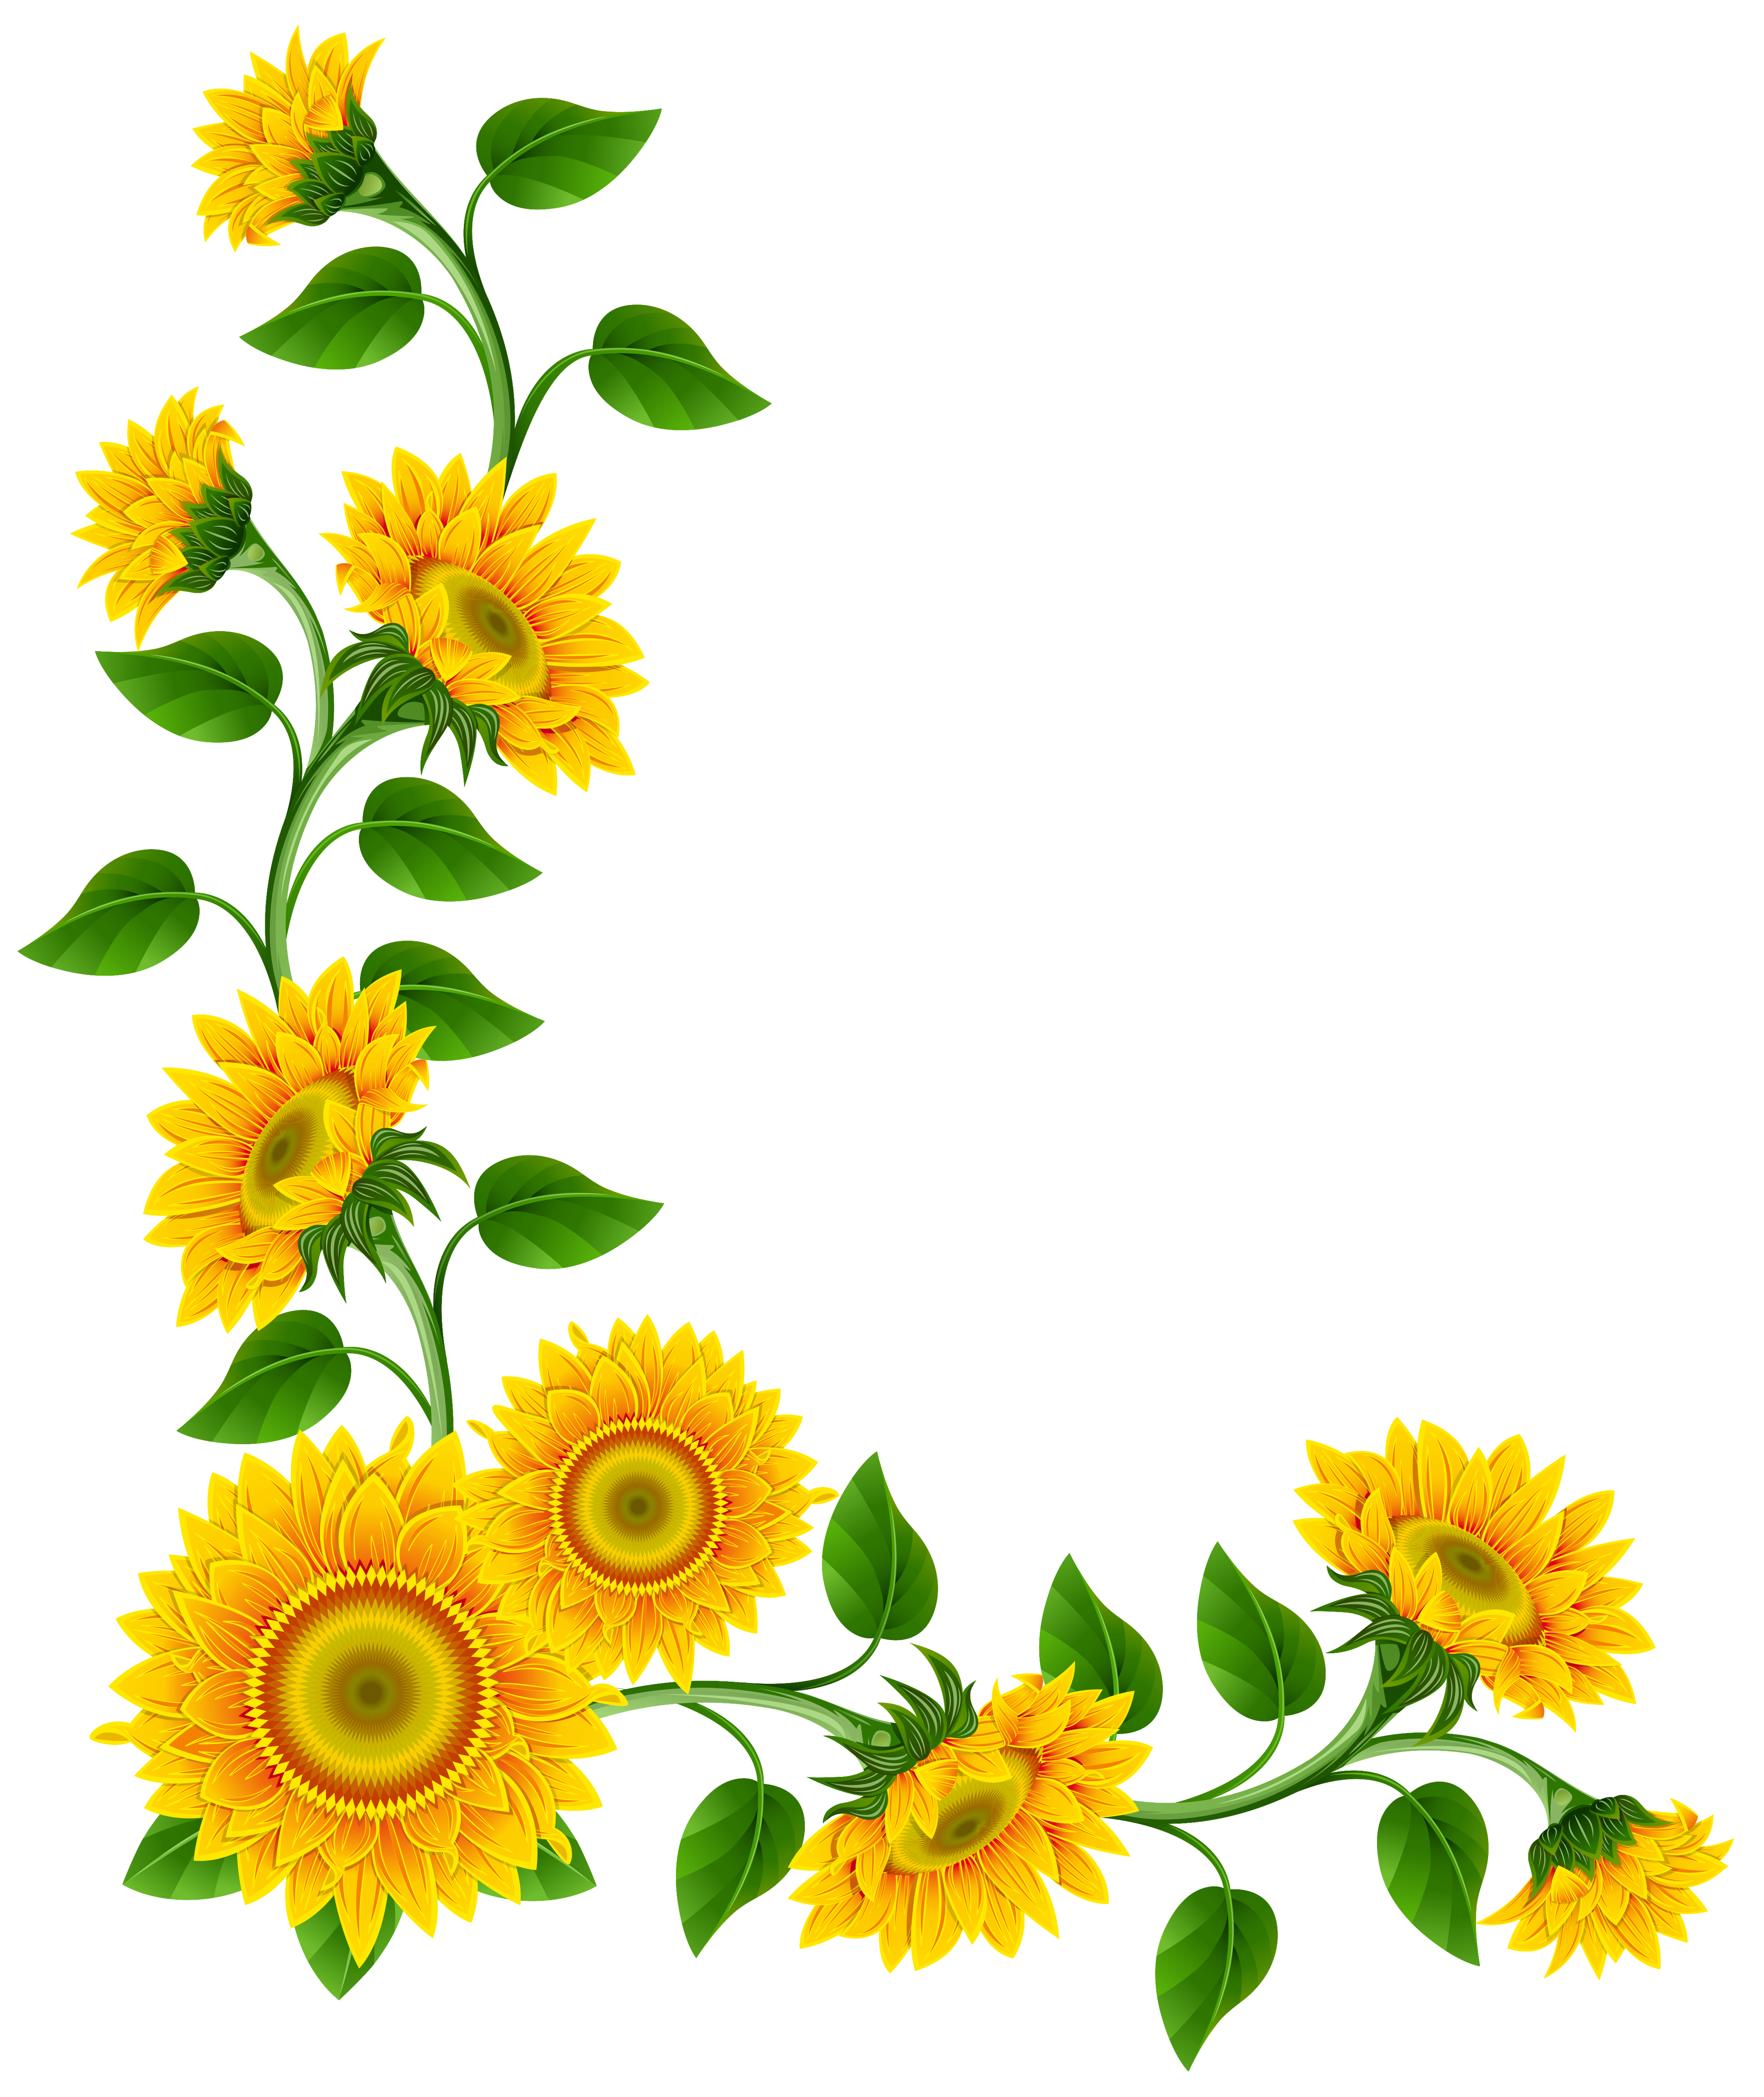 vector library download Sunflower Border Decoration PNG Clipart Image